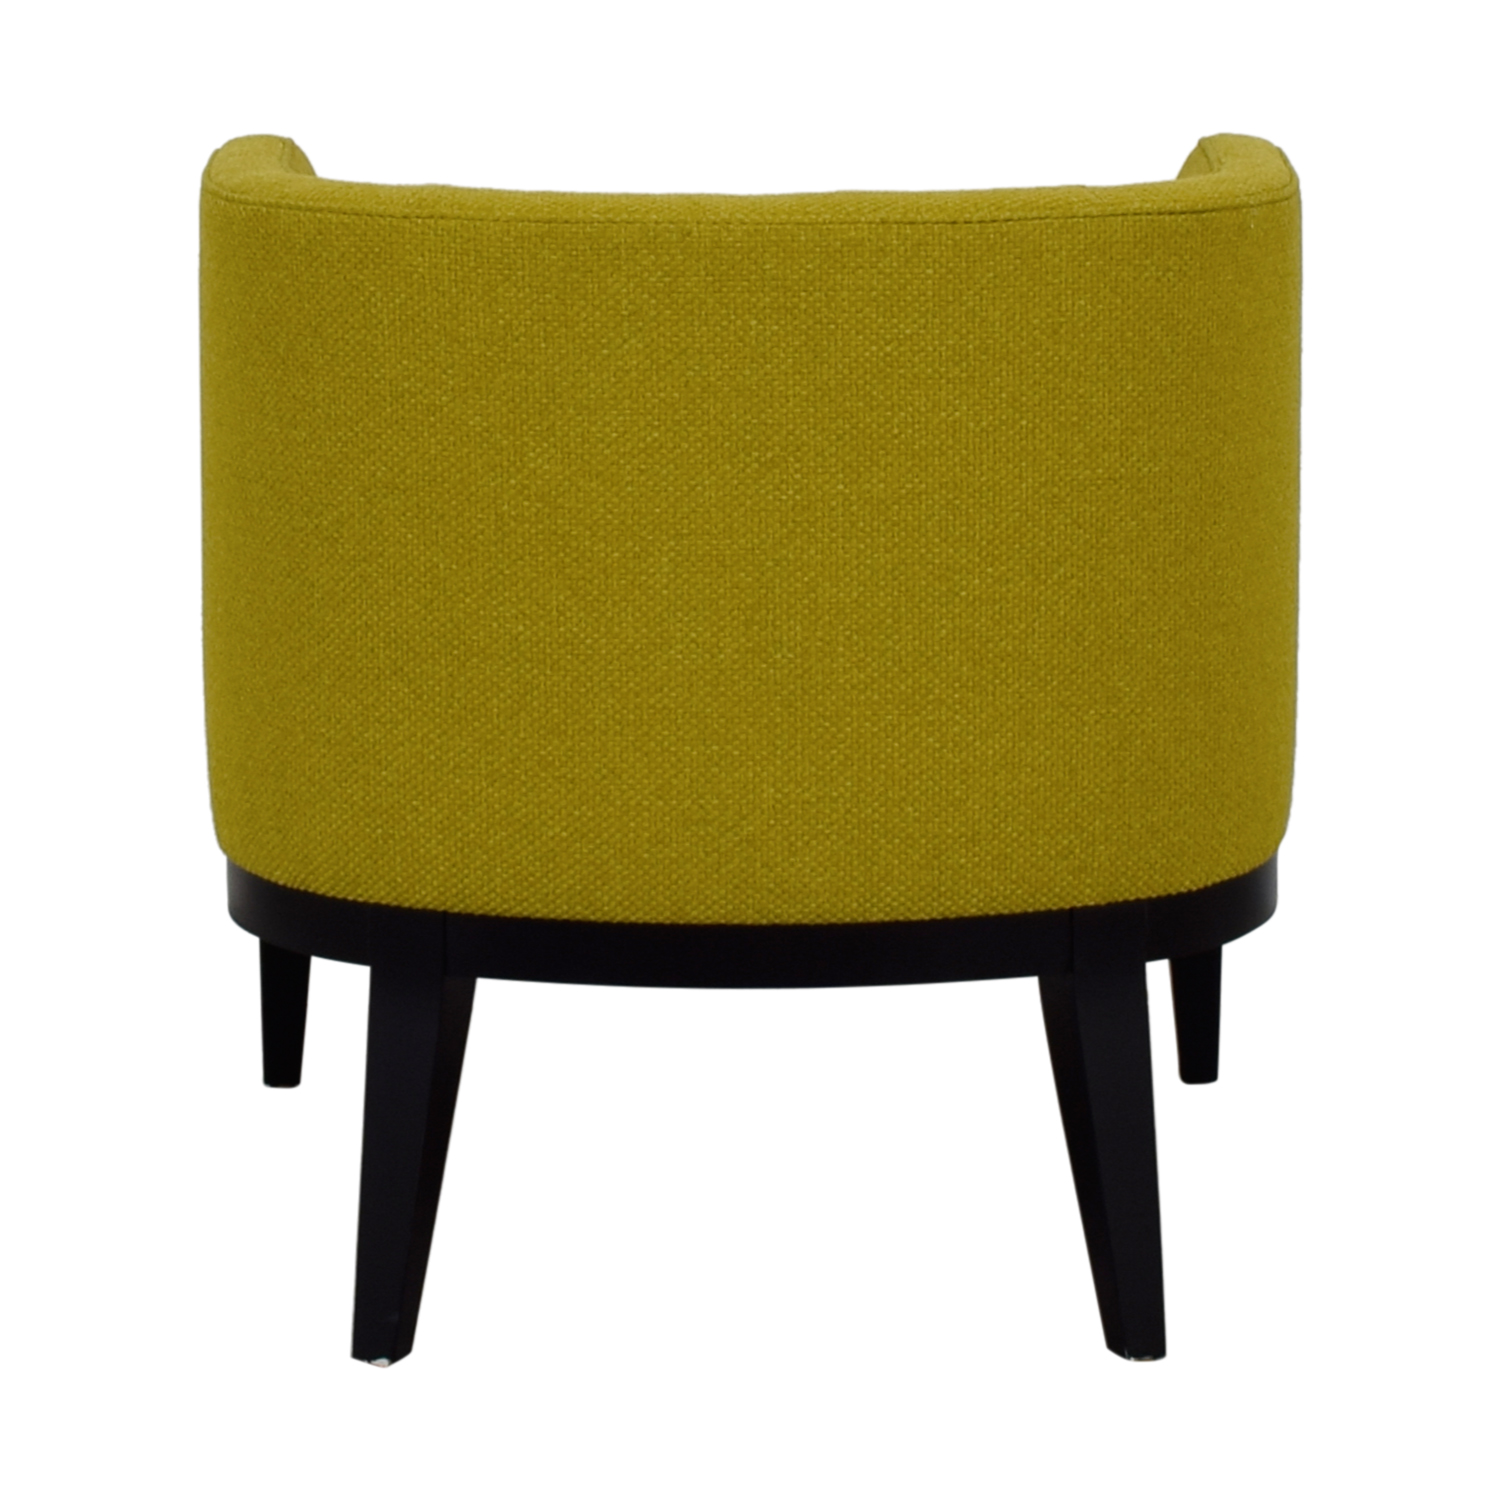 Crate & Barrel Crate & Barrel Grayson Citron Armchair coupon